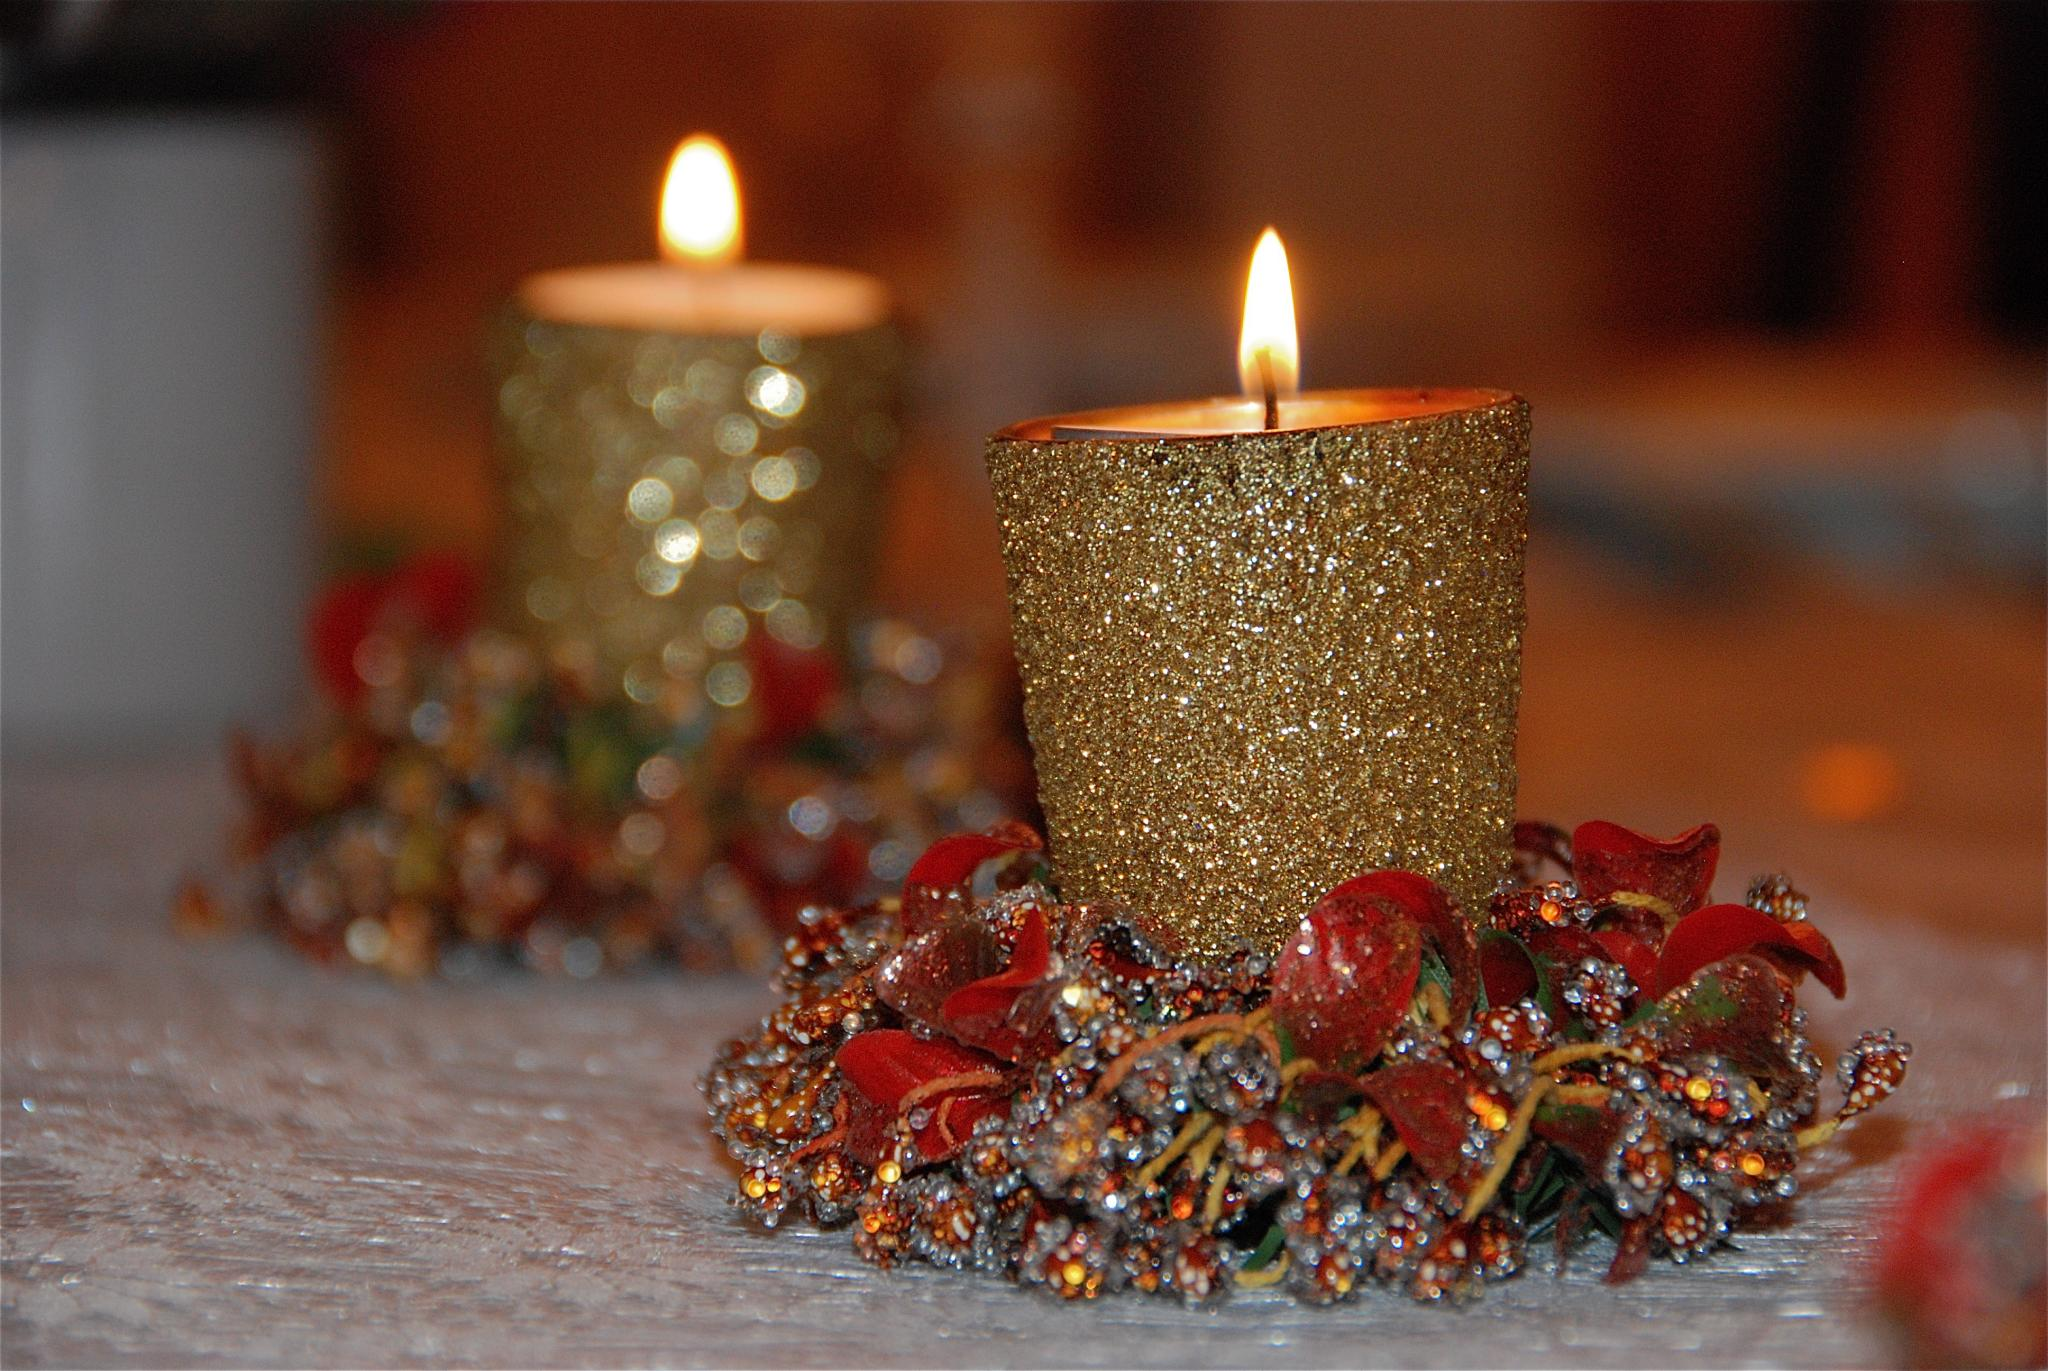 Decorar las velas con purpurina - Decorar con velas ...